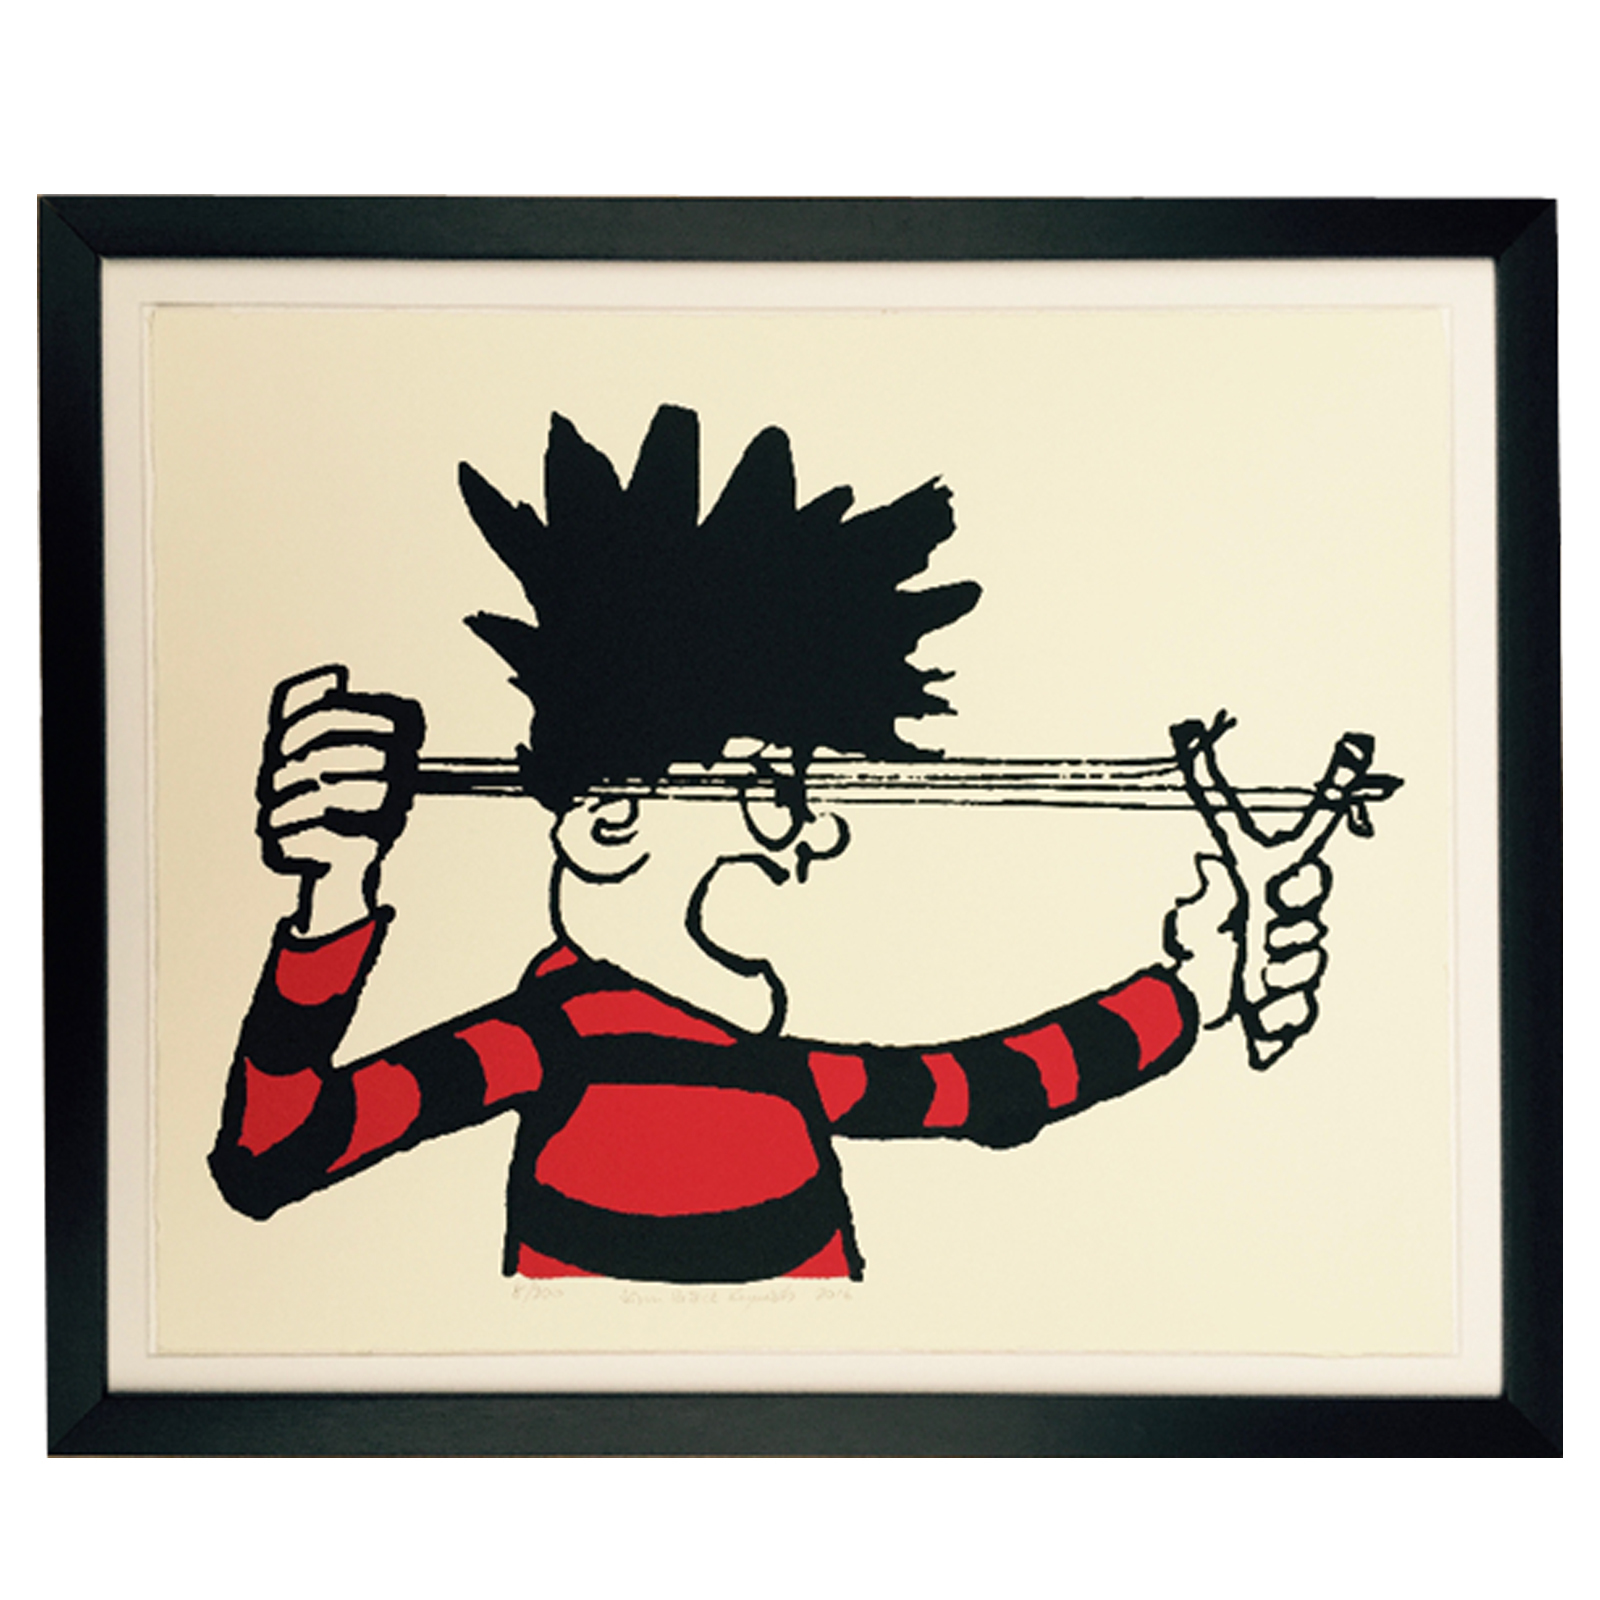 Dennis The Menace and His Catapult - Limited Edition Screen Print